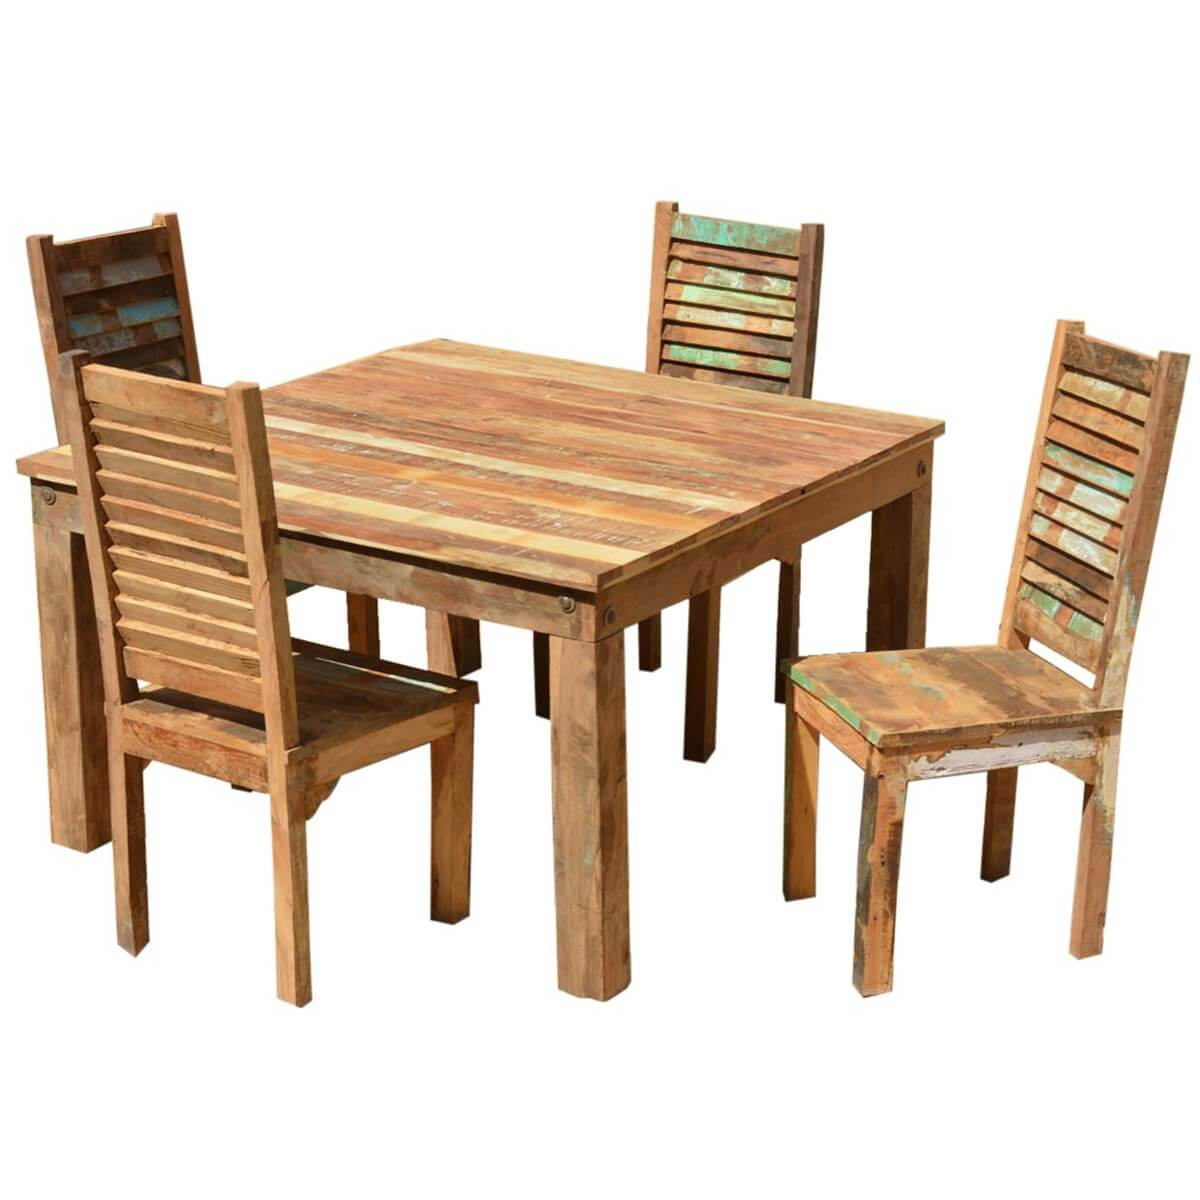 Reclaimed Wood Dining Chairs ~ Ohio reclaimed wood furniture dining table shutter back